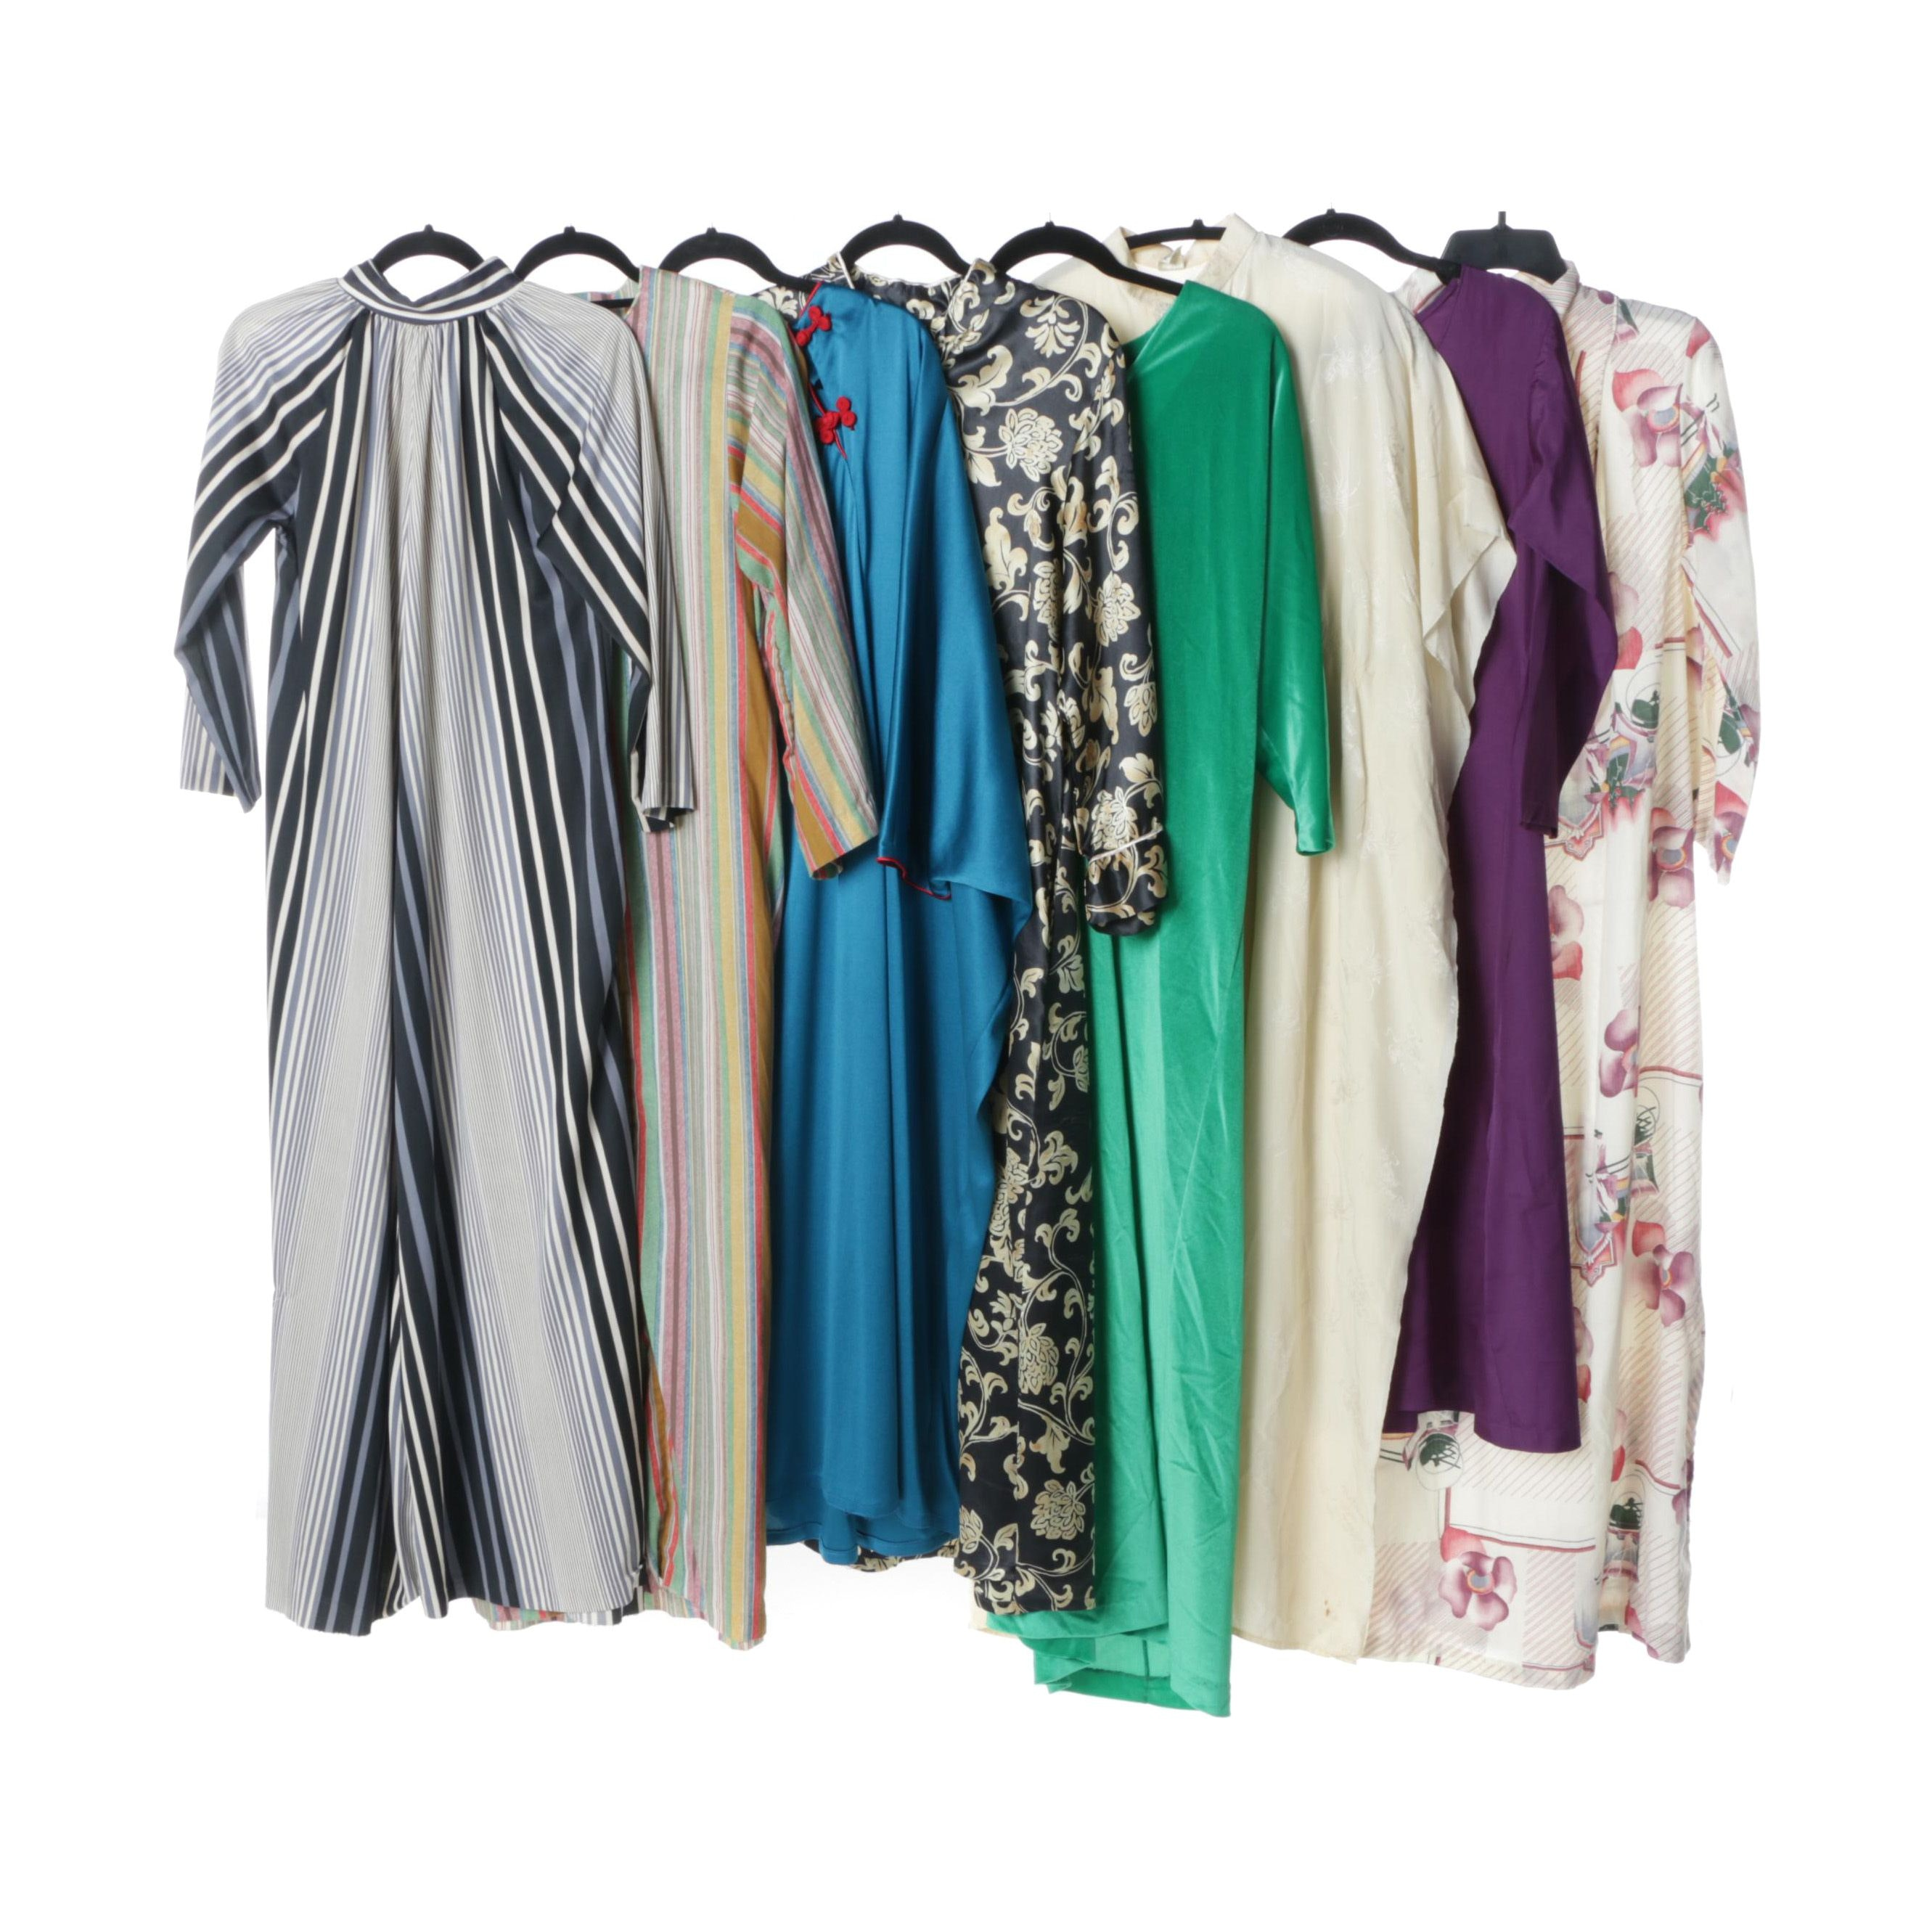 1970s Maxi Dresses and Kaftans Including Silk